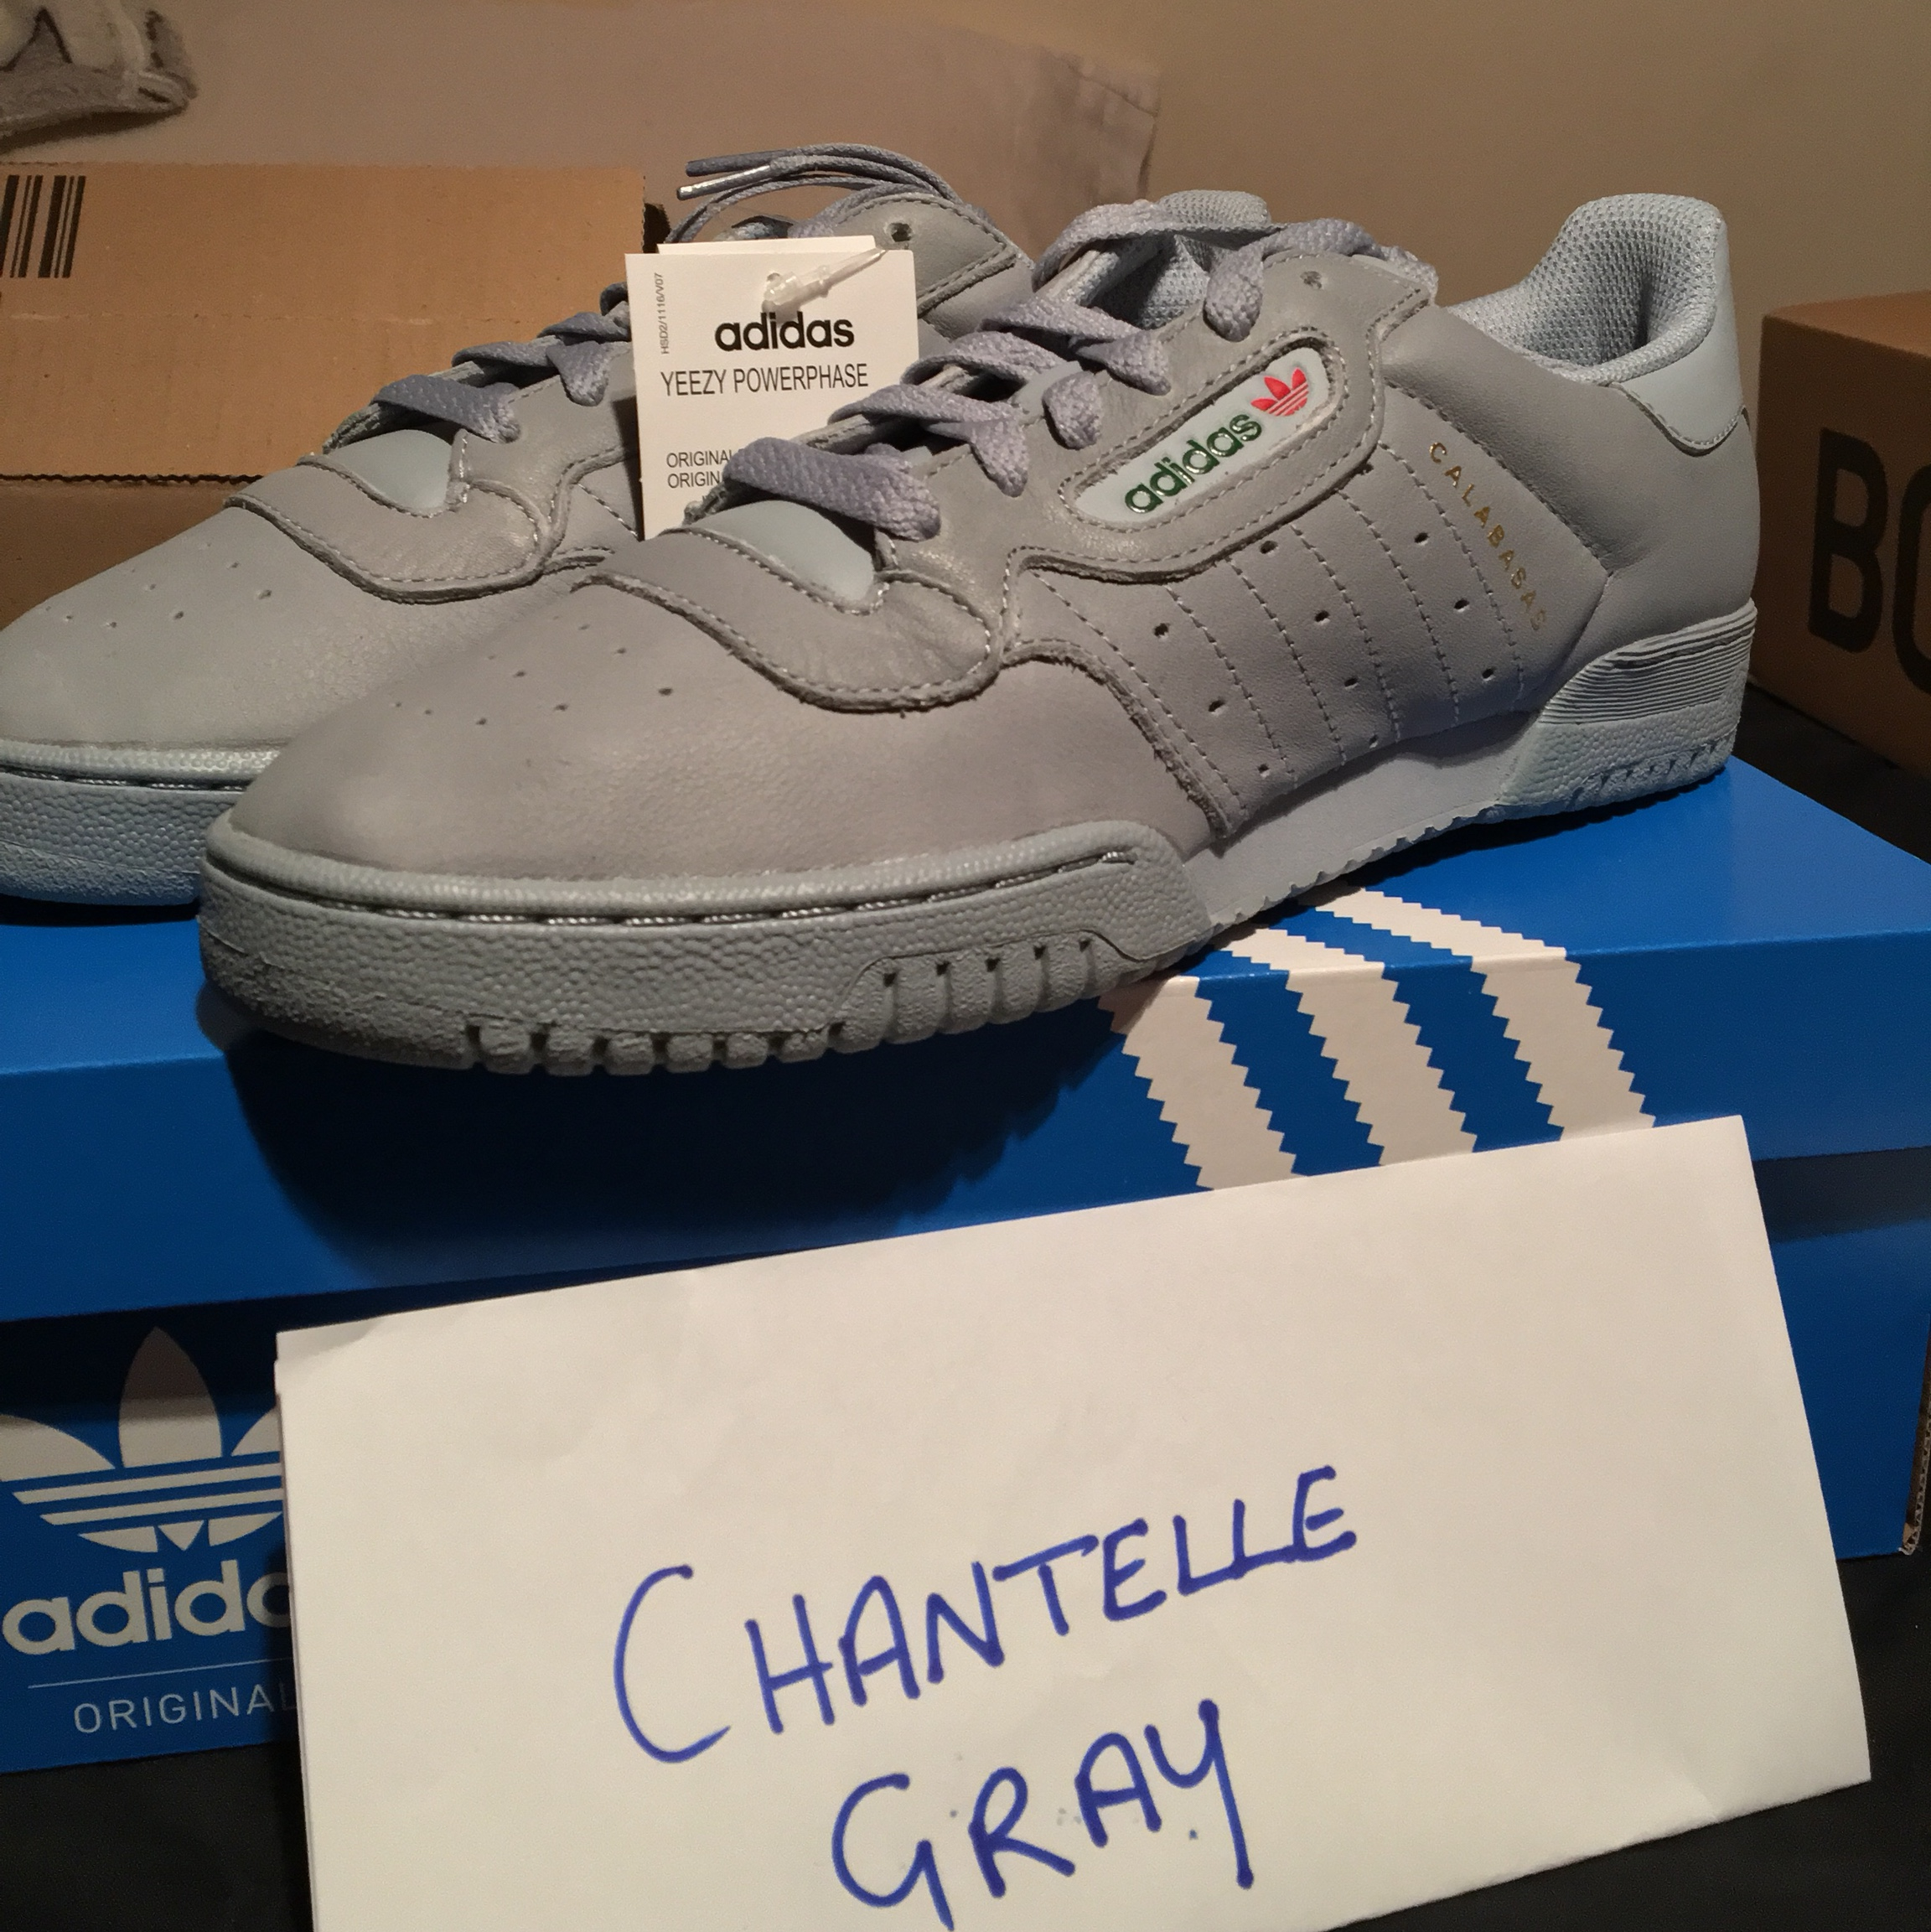 653543d16869e SOLD Yeezy Powerphase • Size 8 UK • DSWT • Ready to ship • - Depop